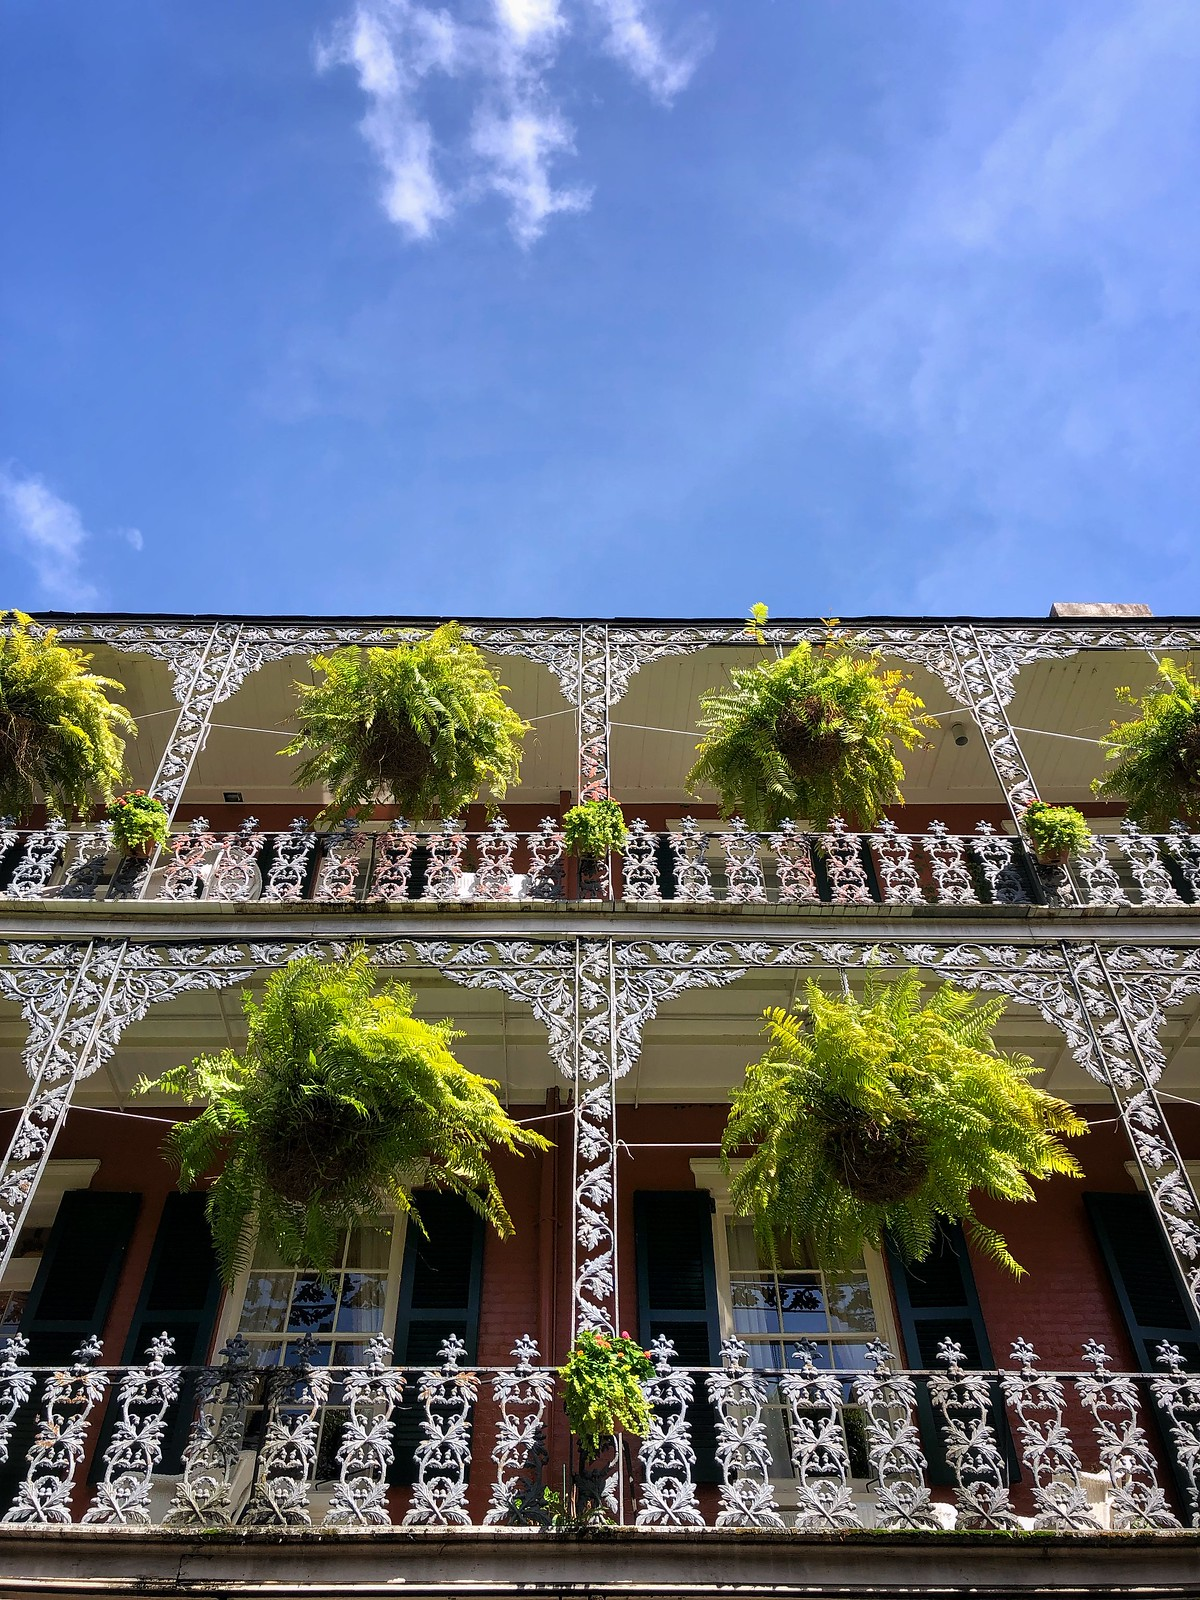 French Quarter | How to Spend 48 Hours in New Orleans in the Summer | New Orleans Travel Guide | What to do in New Orleans | 2 Days in New Orleans | Best Things to do in New Orleans | First Timer's Guide to NOLA | NOLA Travel Guide | 2 Day Itinerary for New Orleans